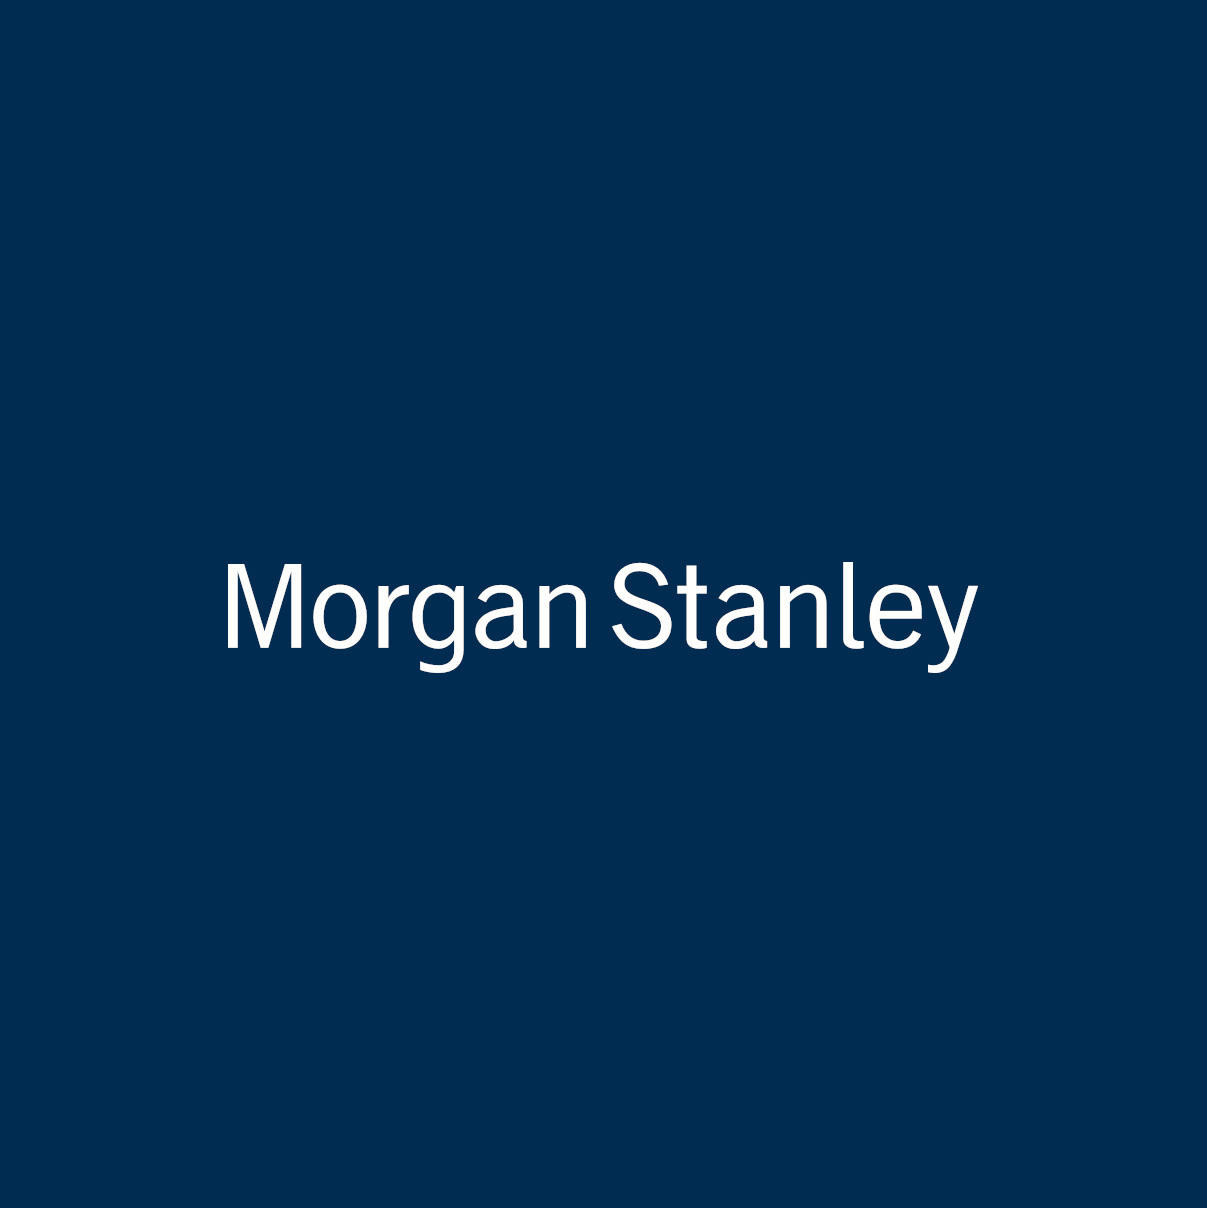 Photo of The Mariaca - Canelas Group - Morgan Stanley